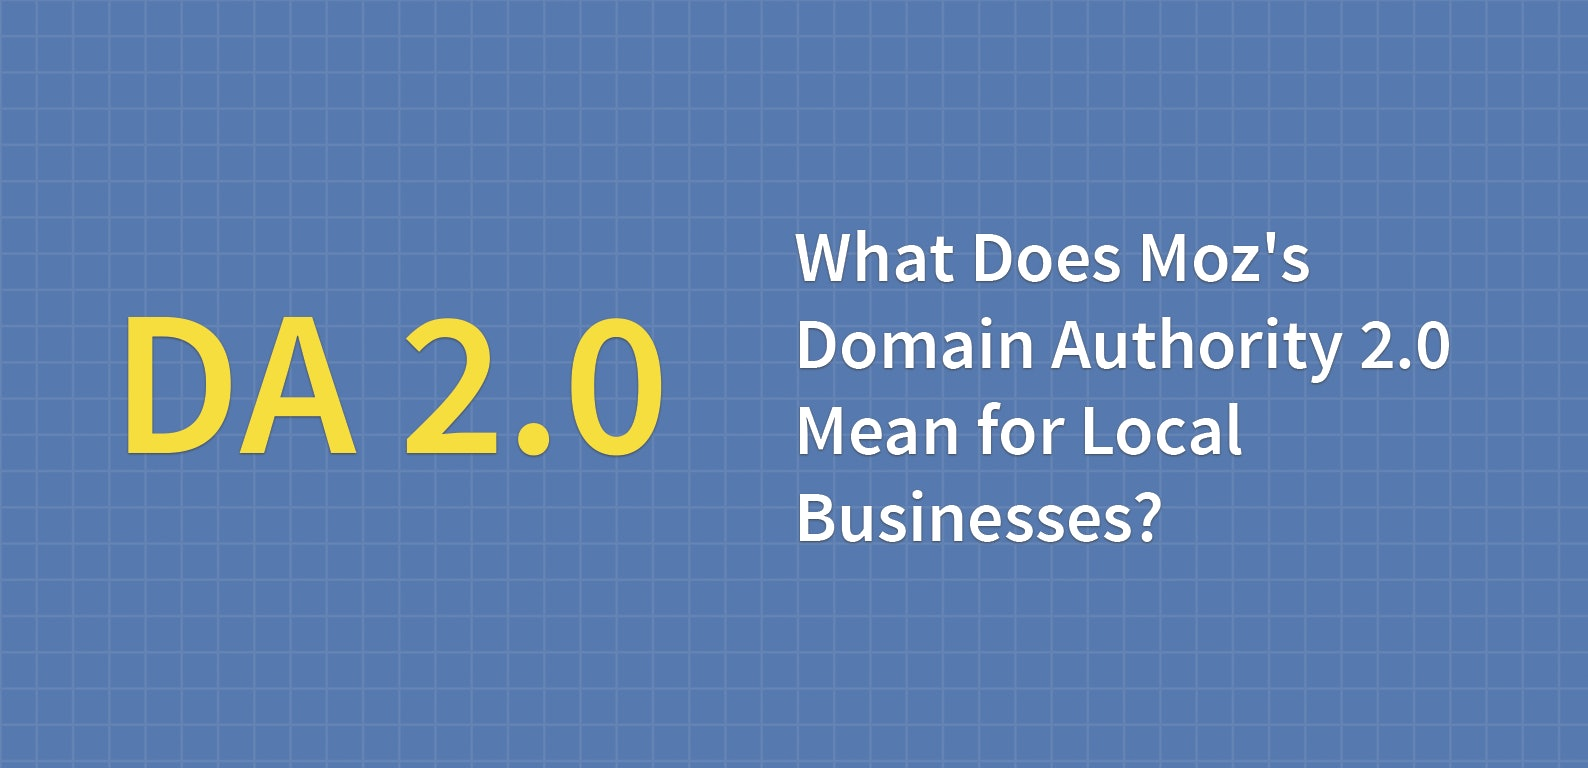 What Does Moz's Domain Authority 2.0 Mean for Local Businesses?